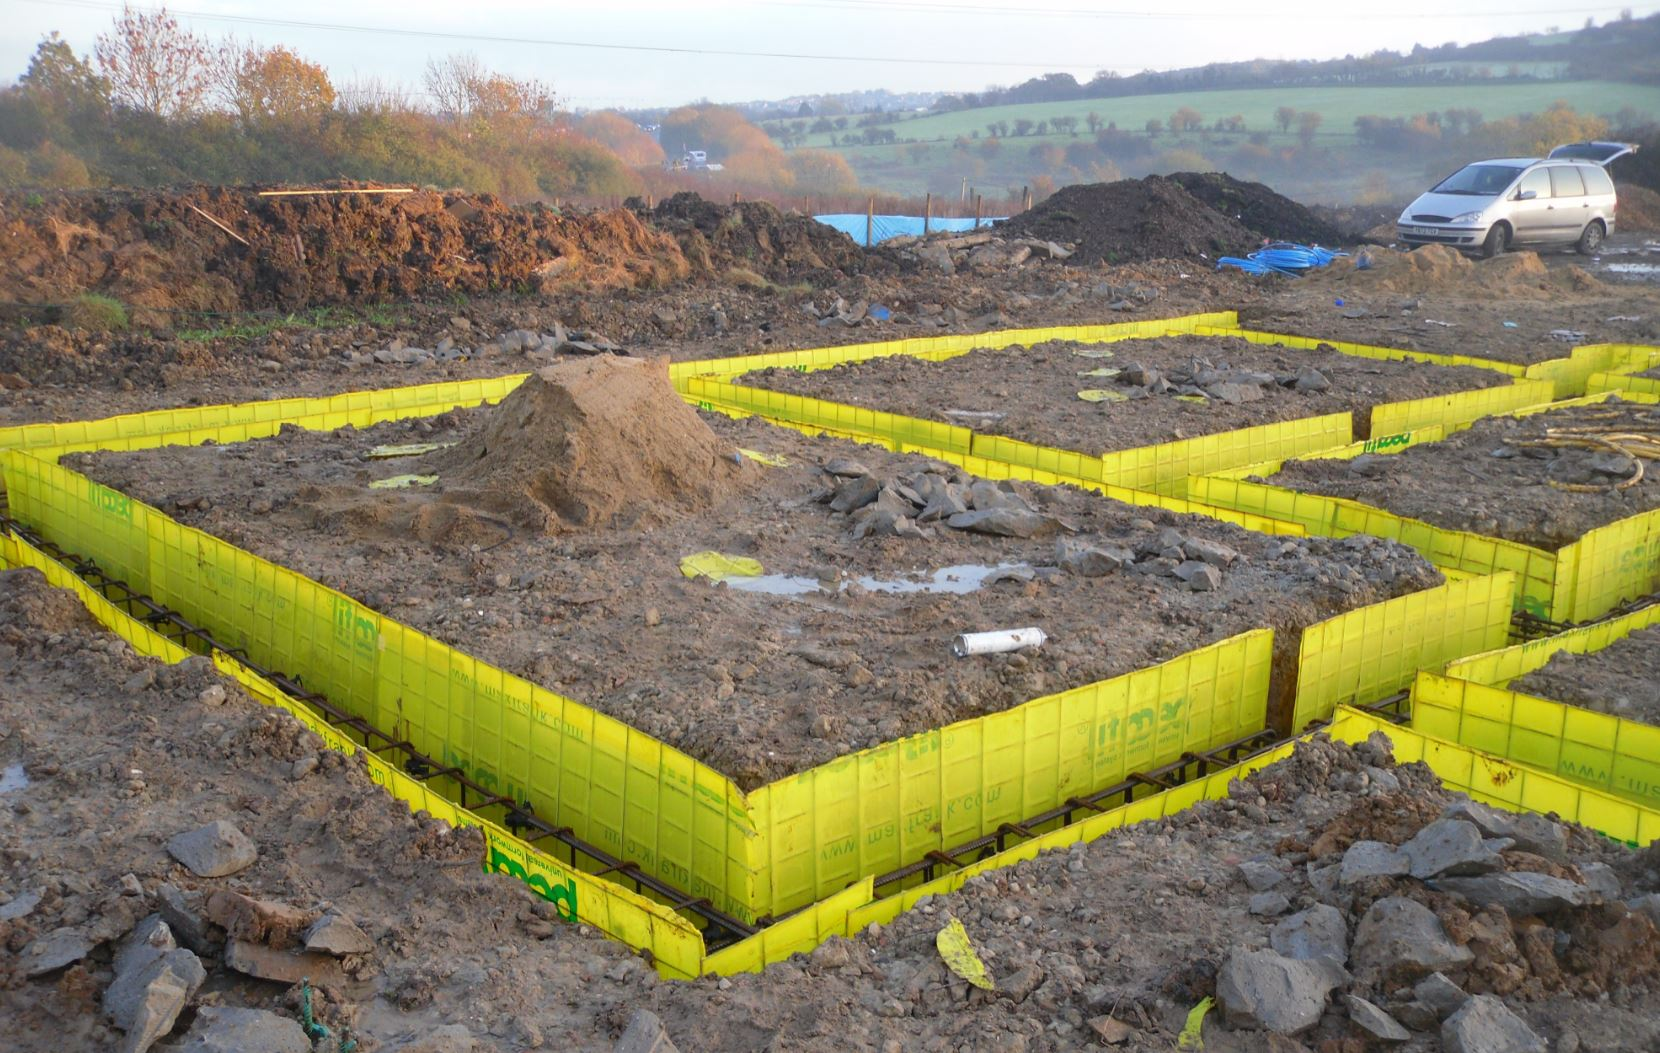 Piling is a way of securing the foundations of a building that rests on weak soil or other material, such as sand or silt.